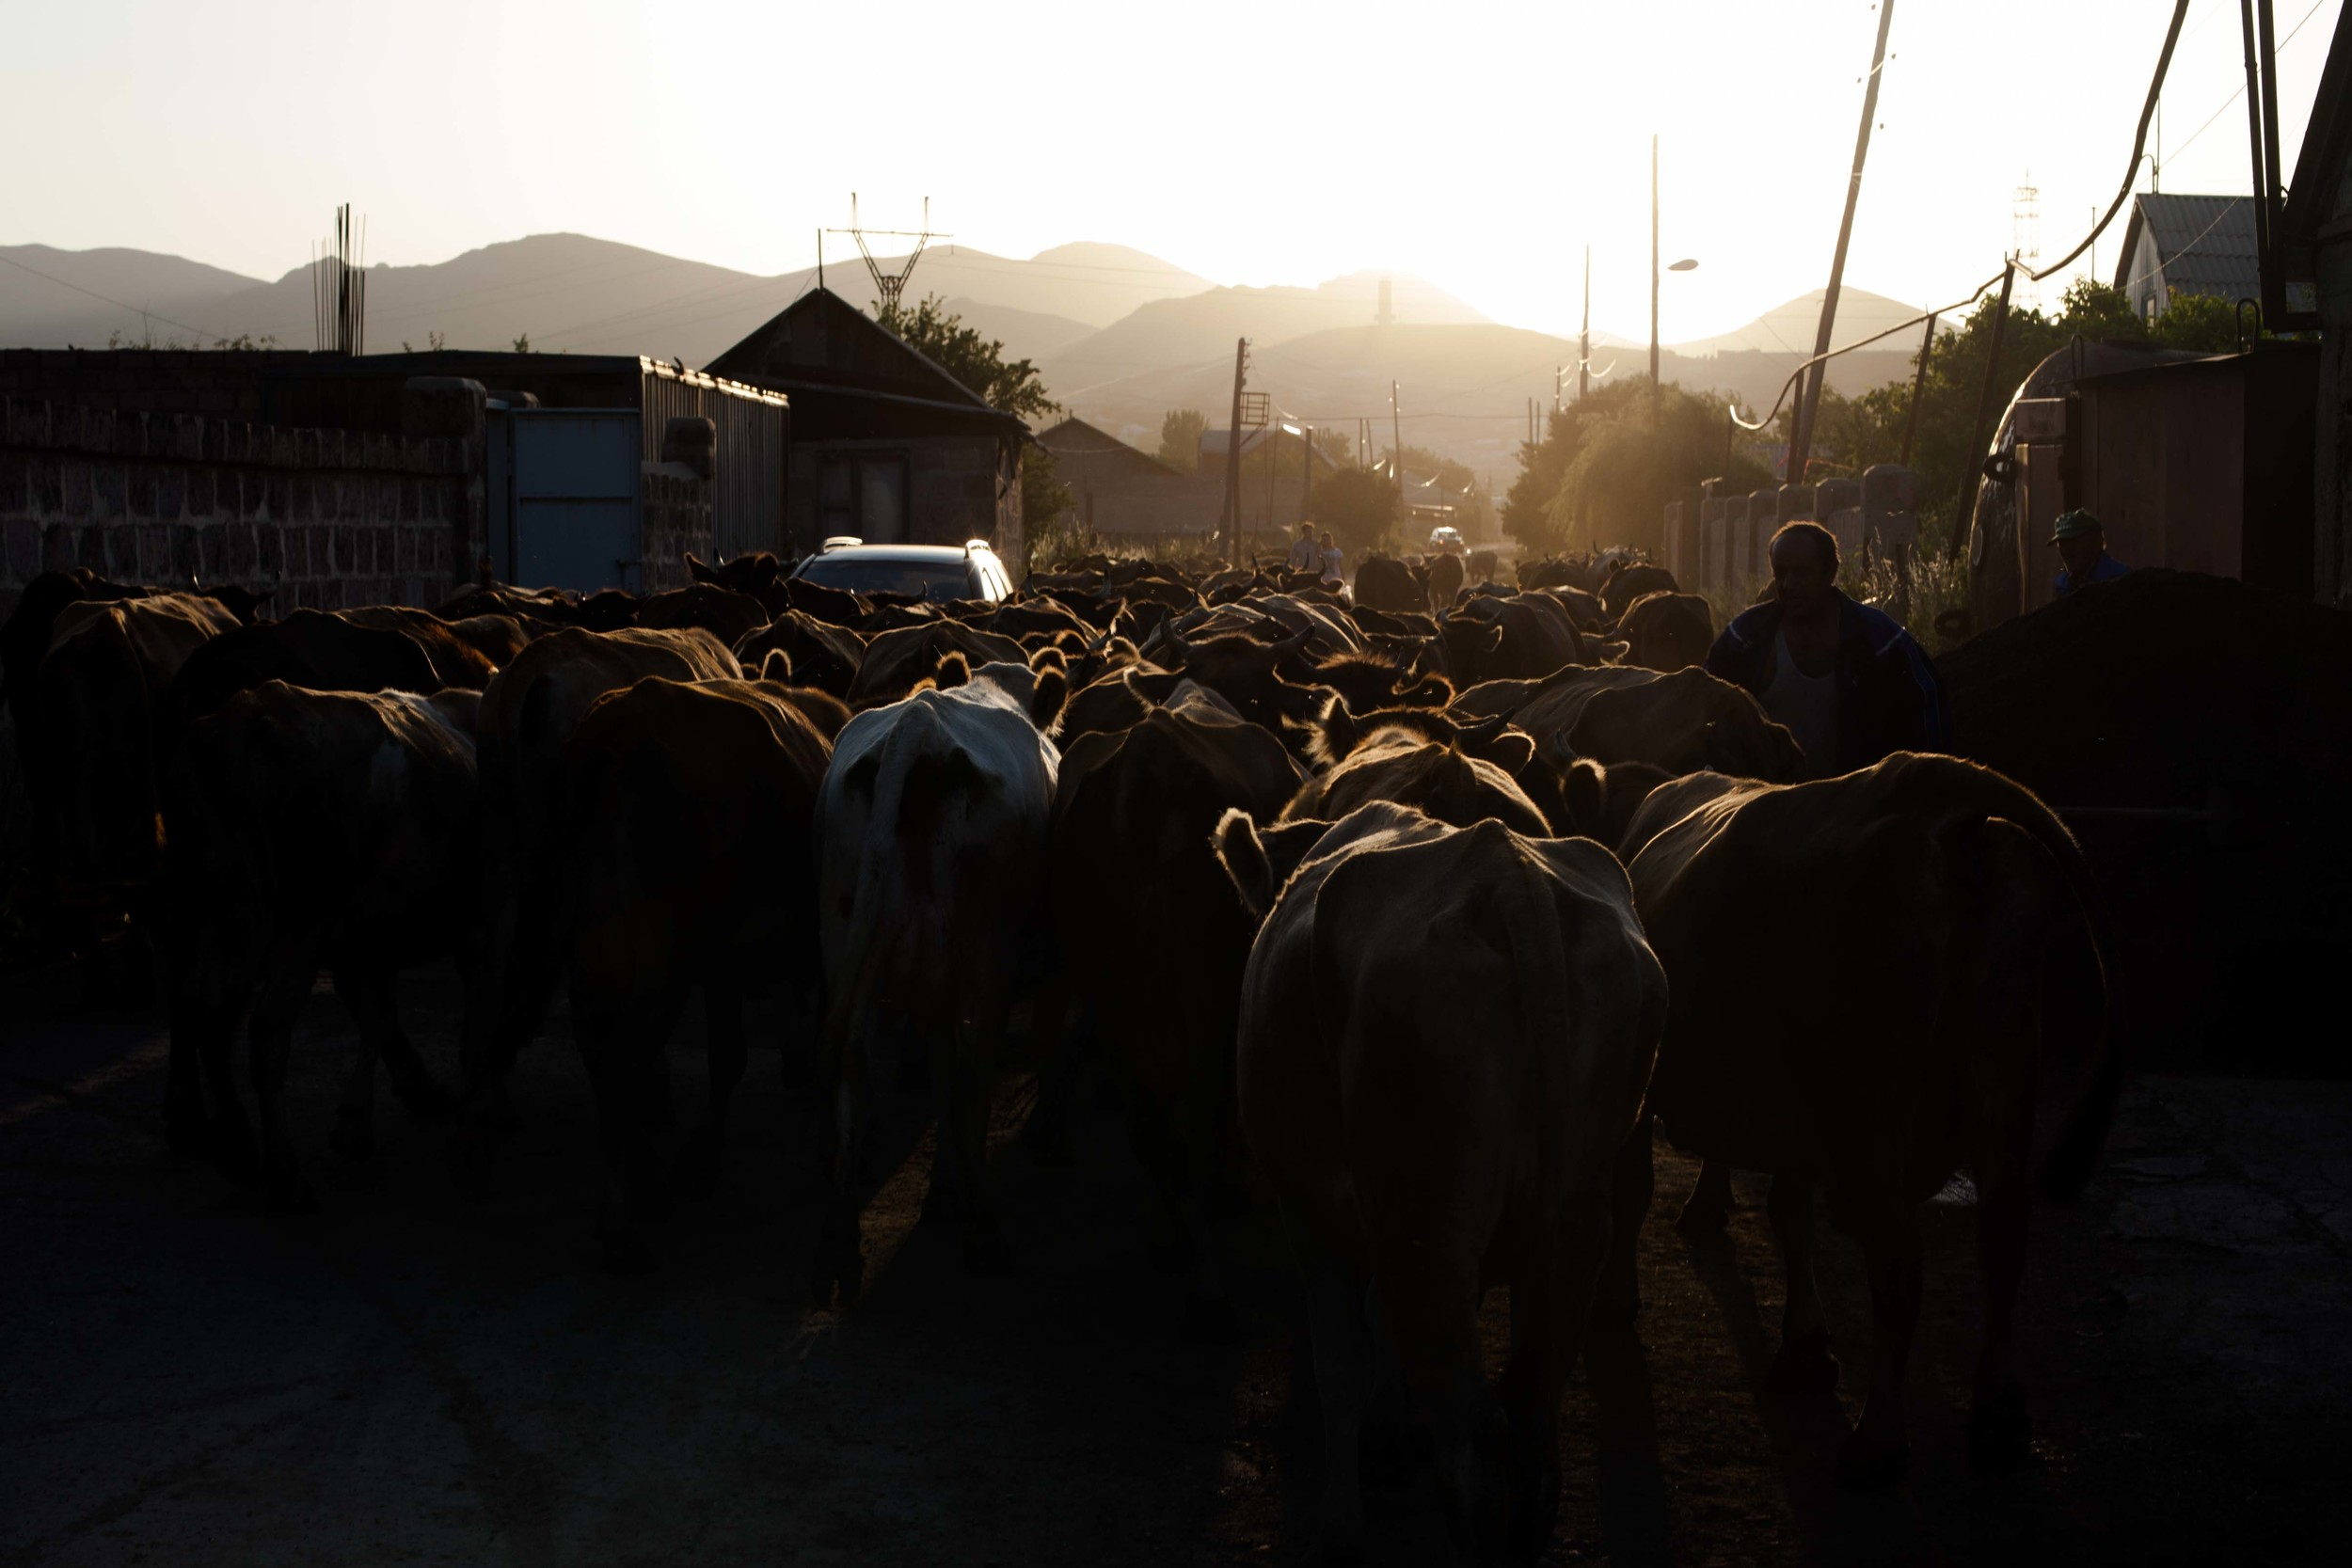 The cows from a neighborhood in Spitak return home just before sunset.